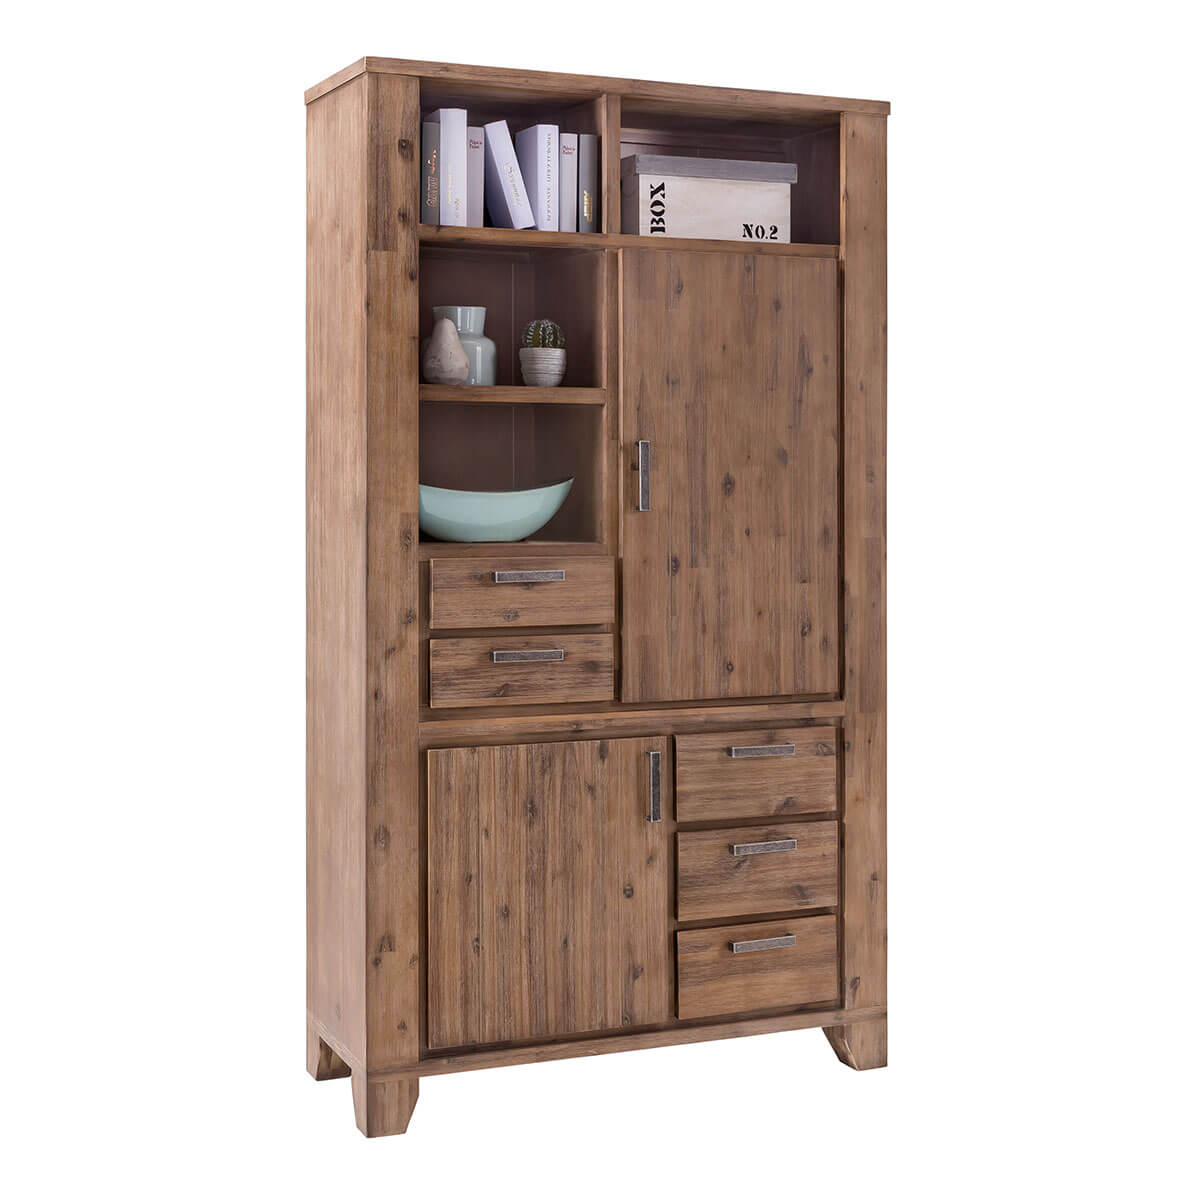 Highboard Avora 110cm Breit in Braun Akazie Massiv